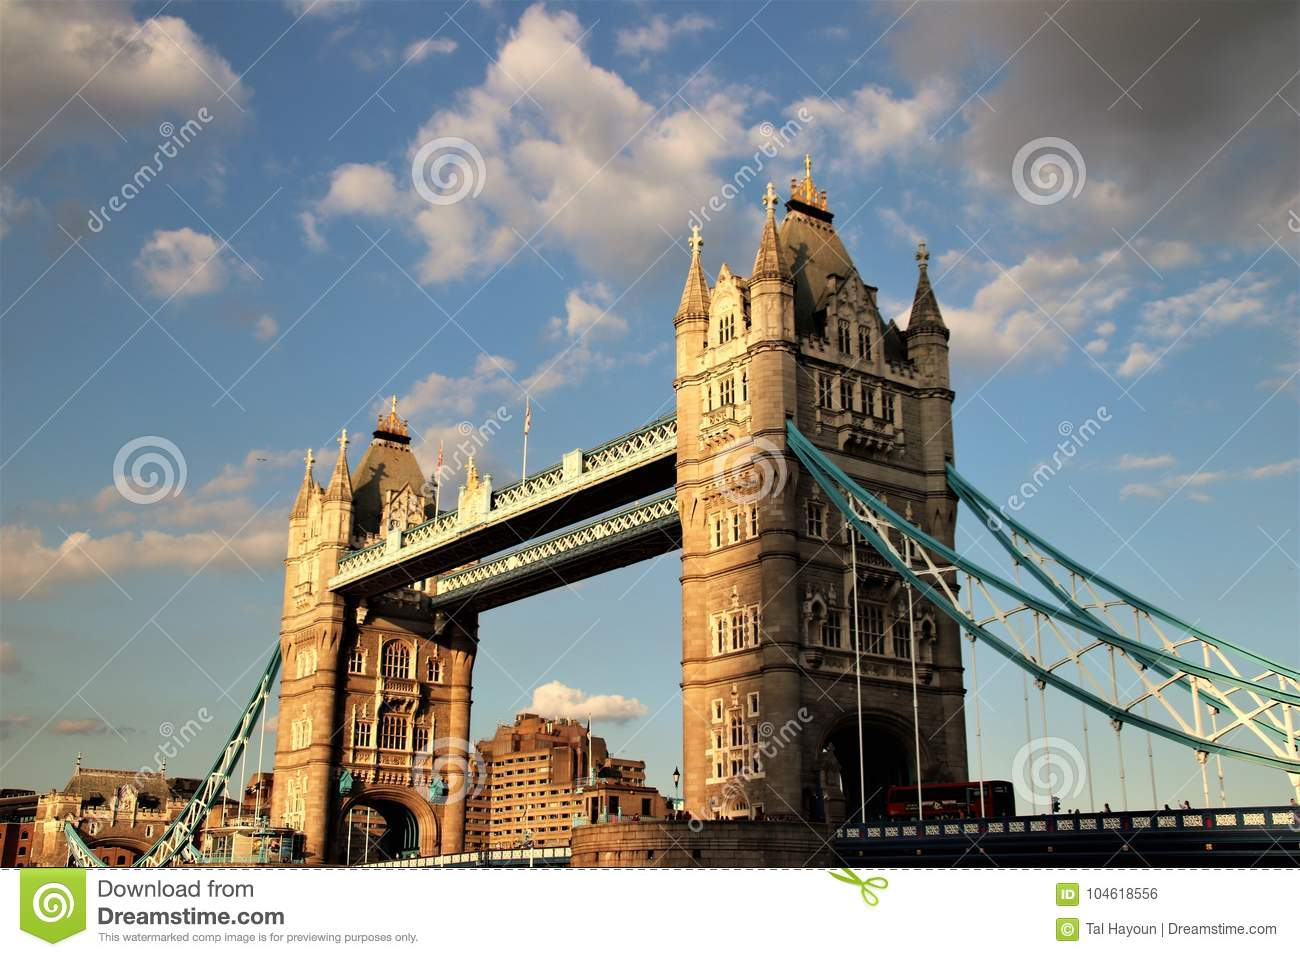 Tower Bridge A Famous Icon Of The City London UK On River Thames From An Angle With Cloudy Sky